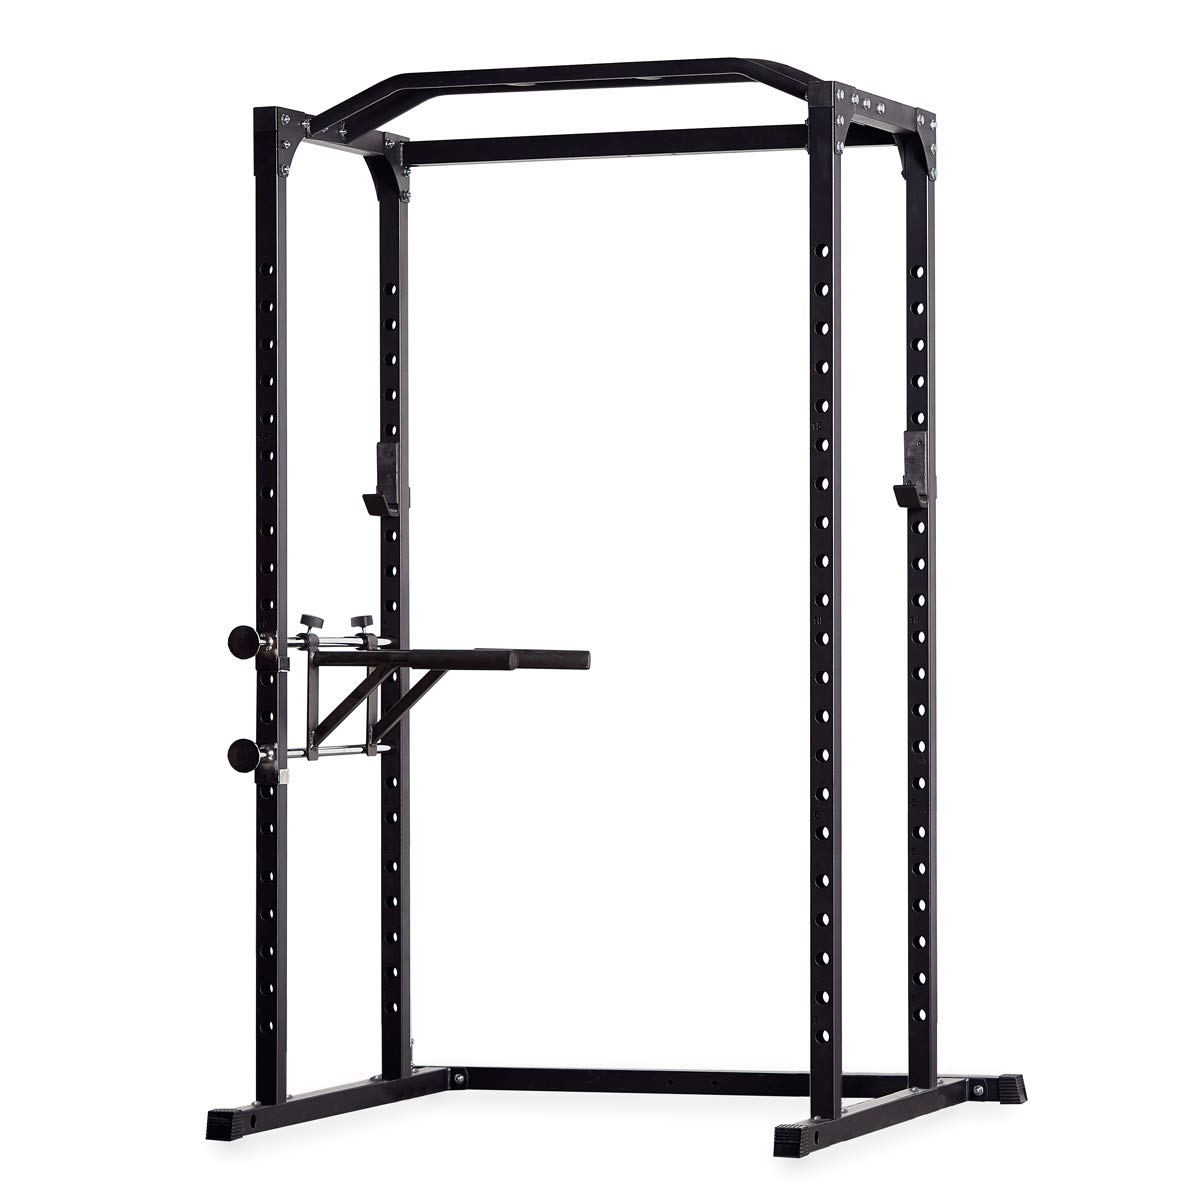 Rep PR-1100 Power Rack - 1,000 lbs Rated Lifting Cage for Weight Training (Power Rack + Dip Attachment, with FB-3000 Flat Bench)